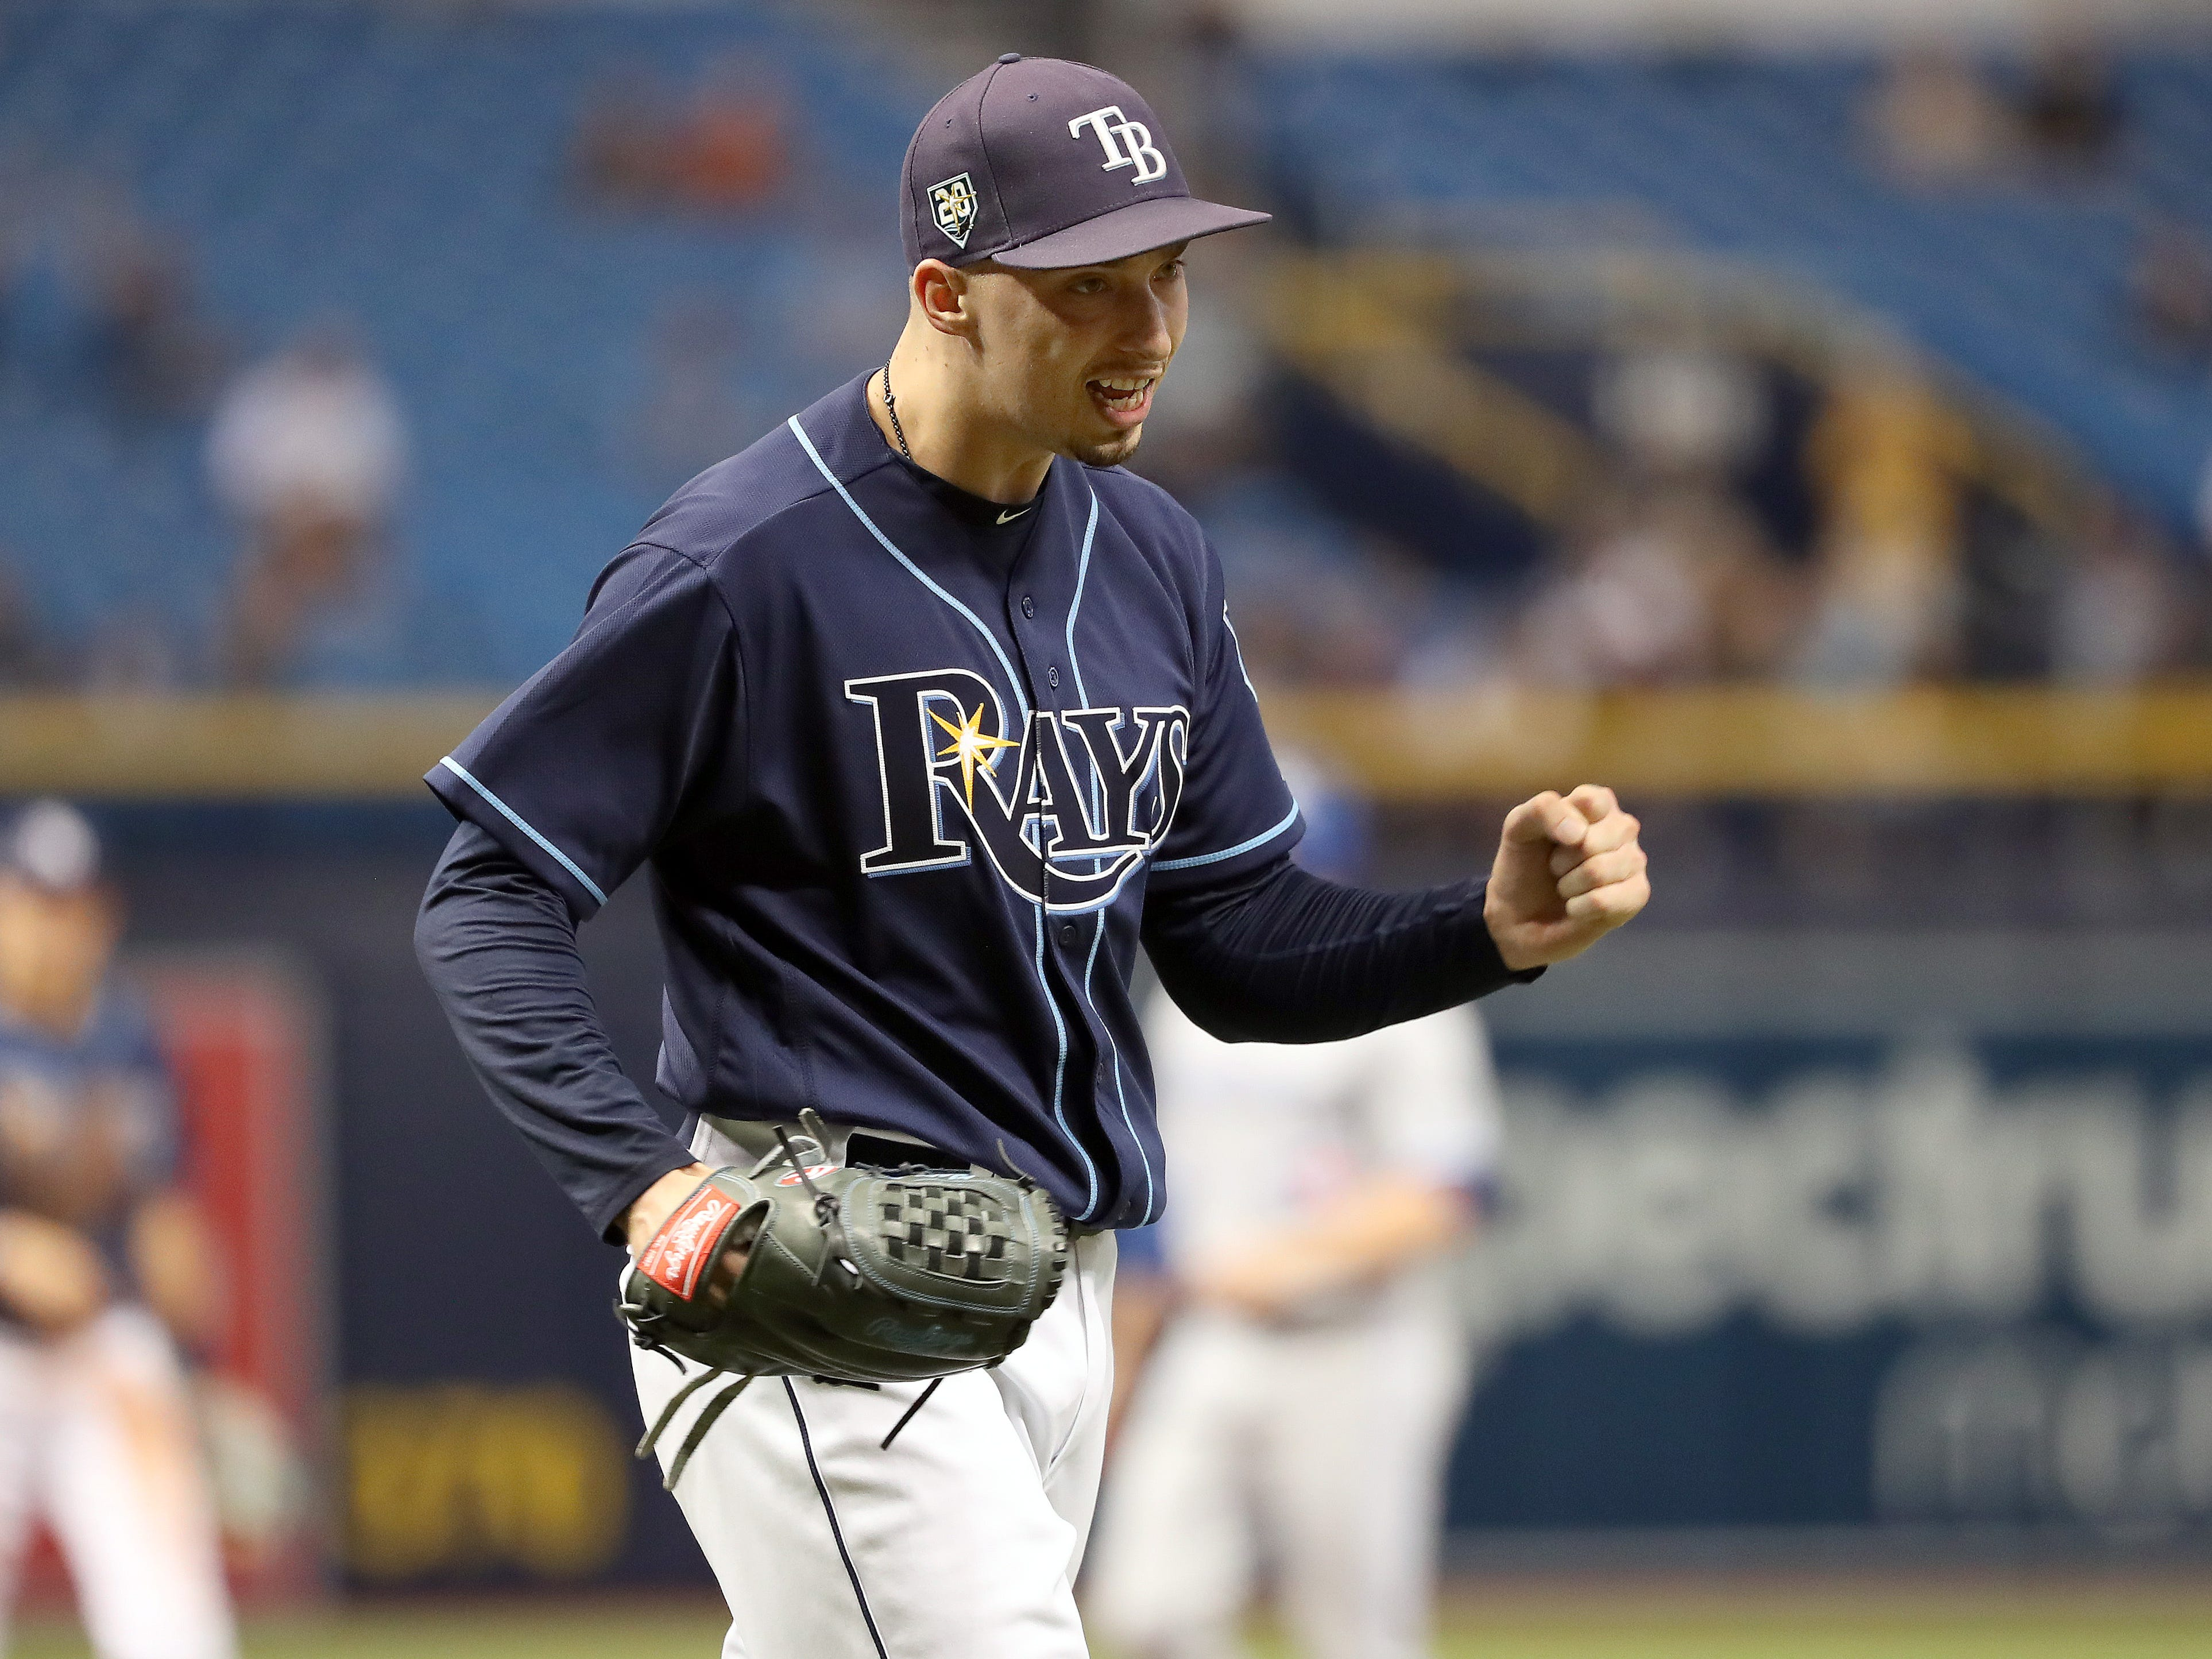 LHP Blake Snell, Rays